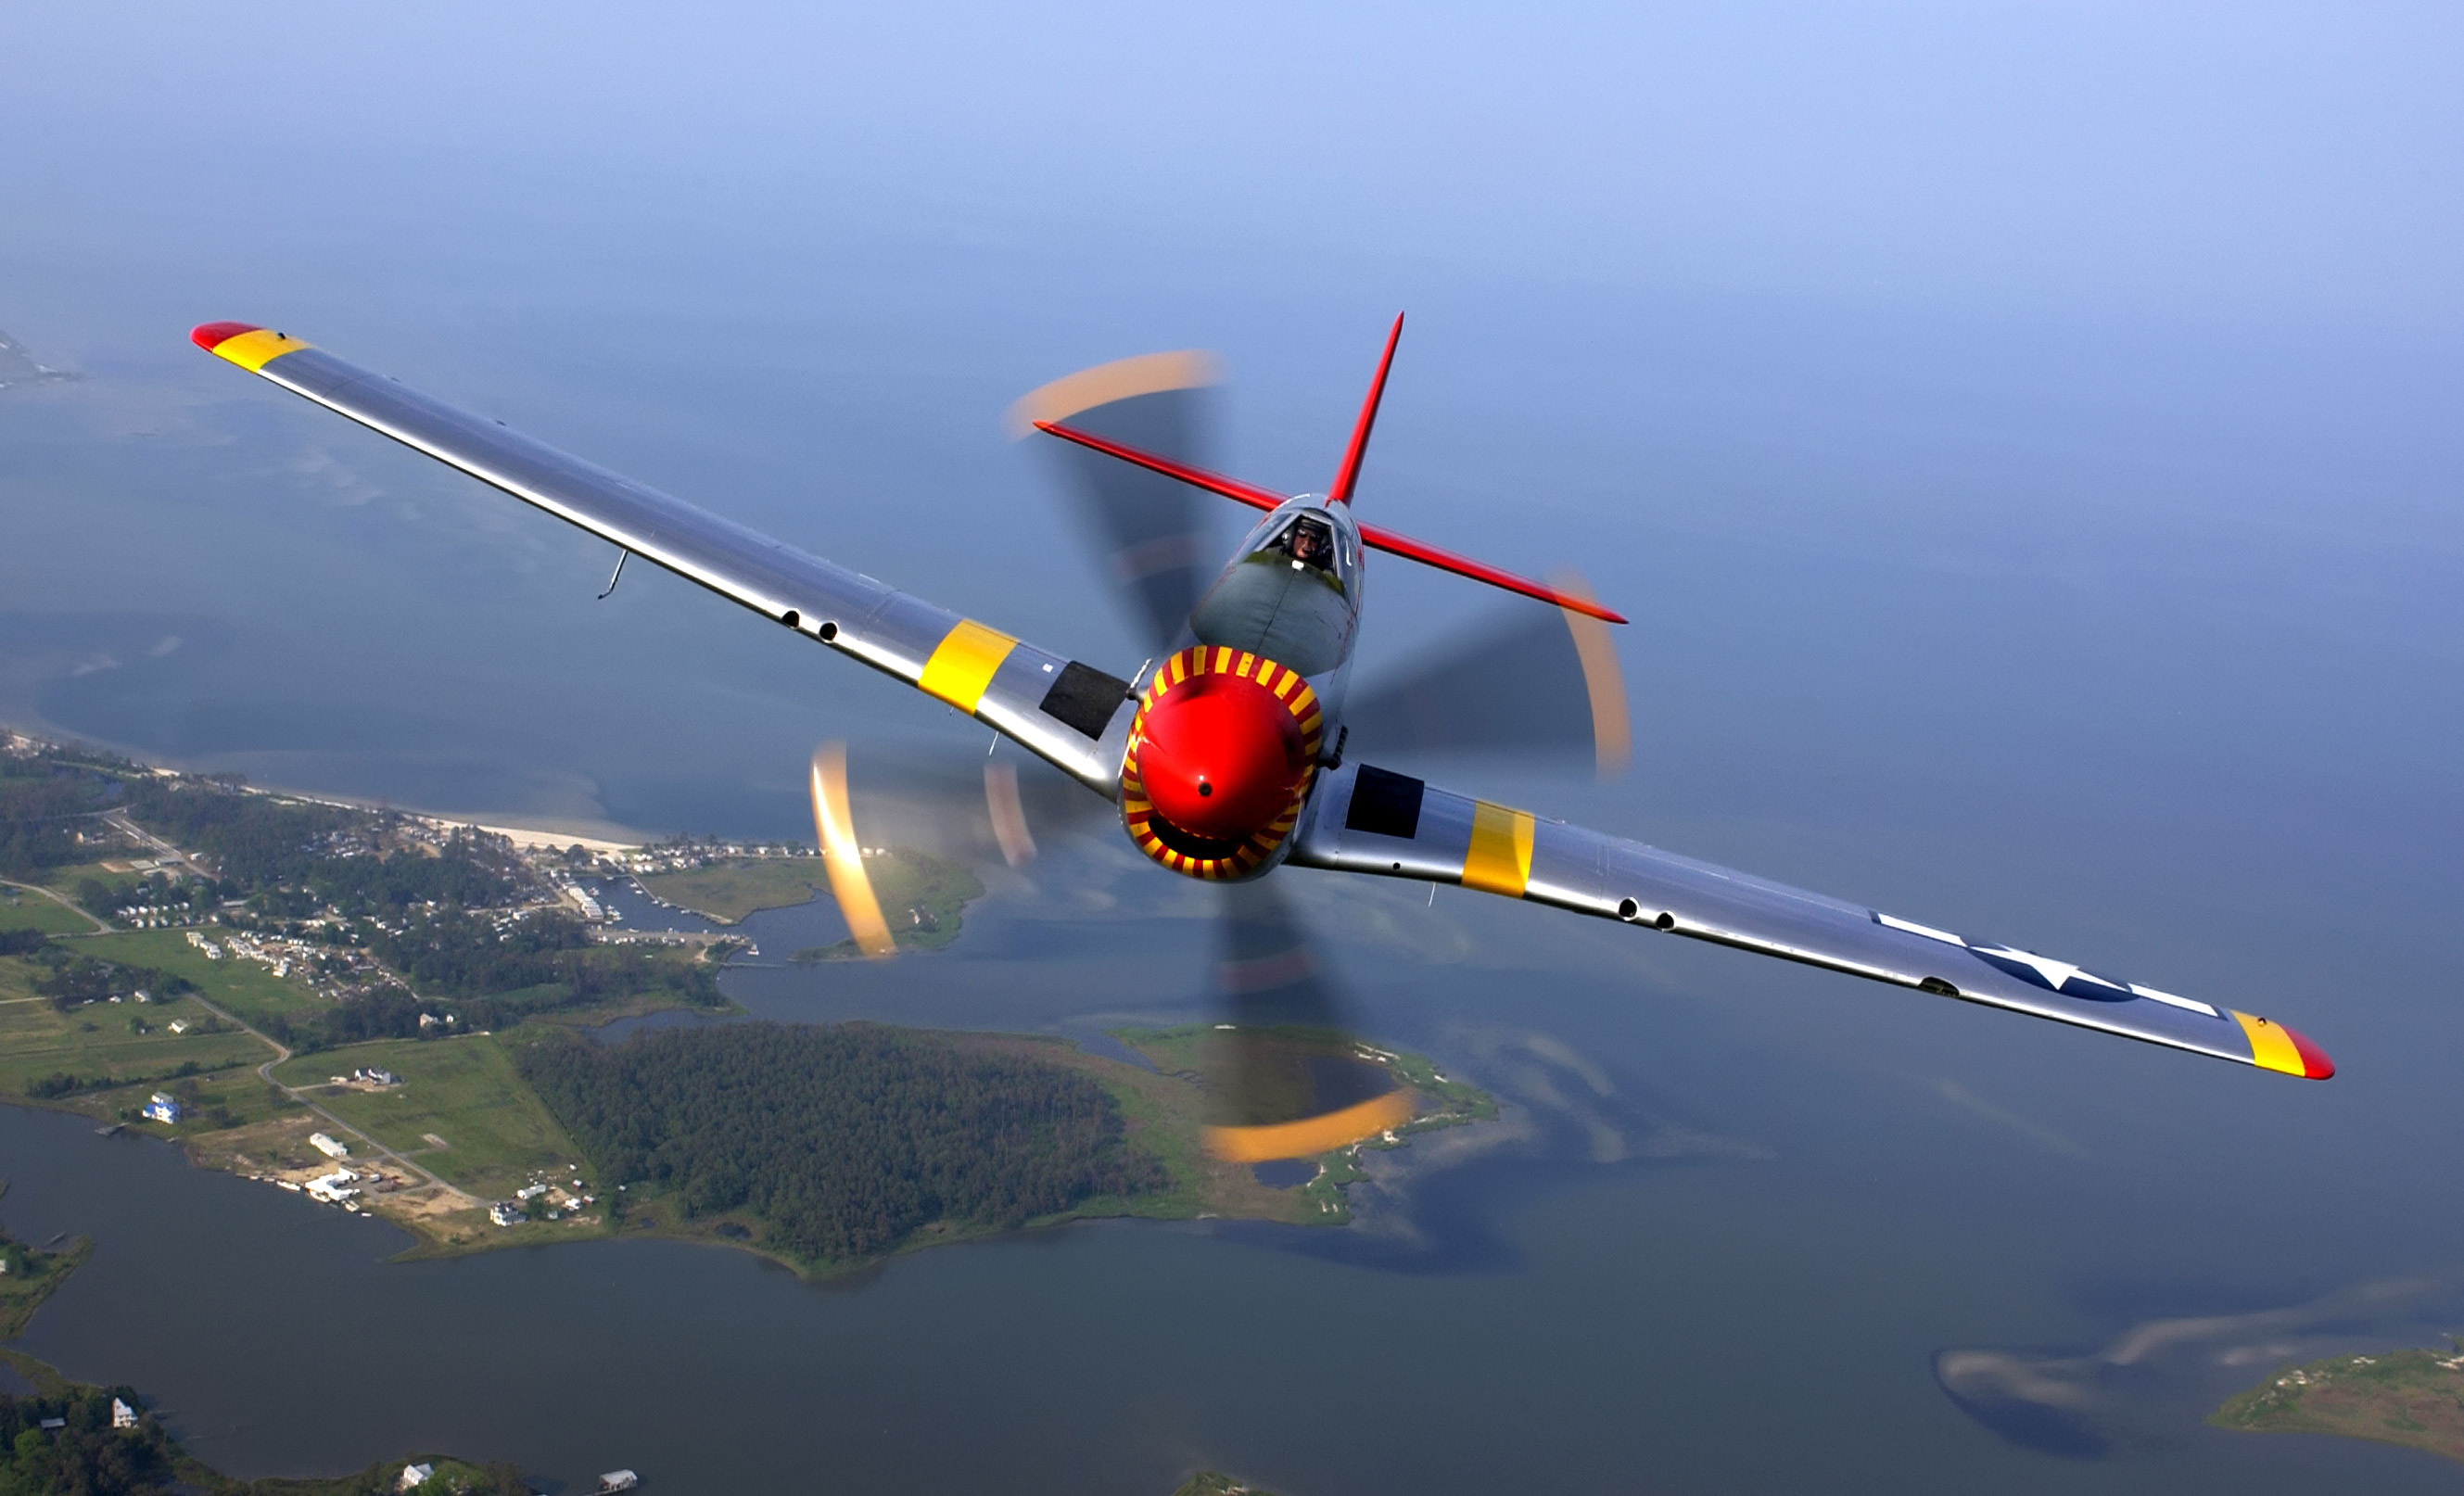 file:p-51 mustang edit1 - wikipedia